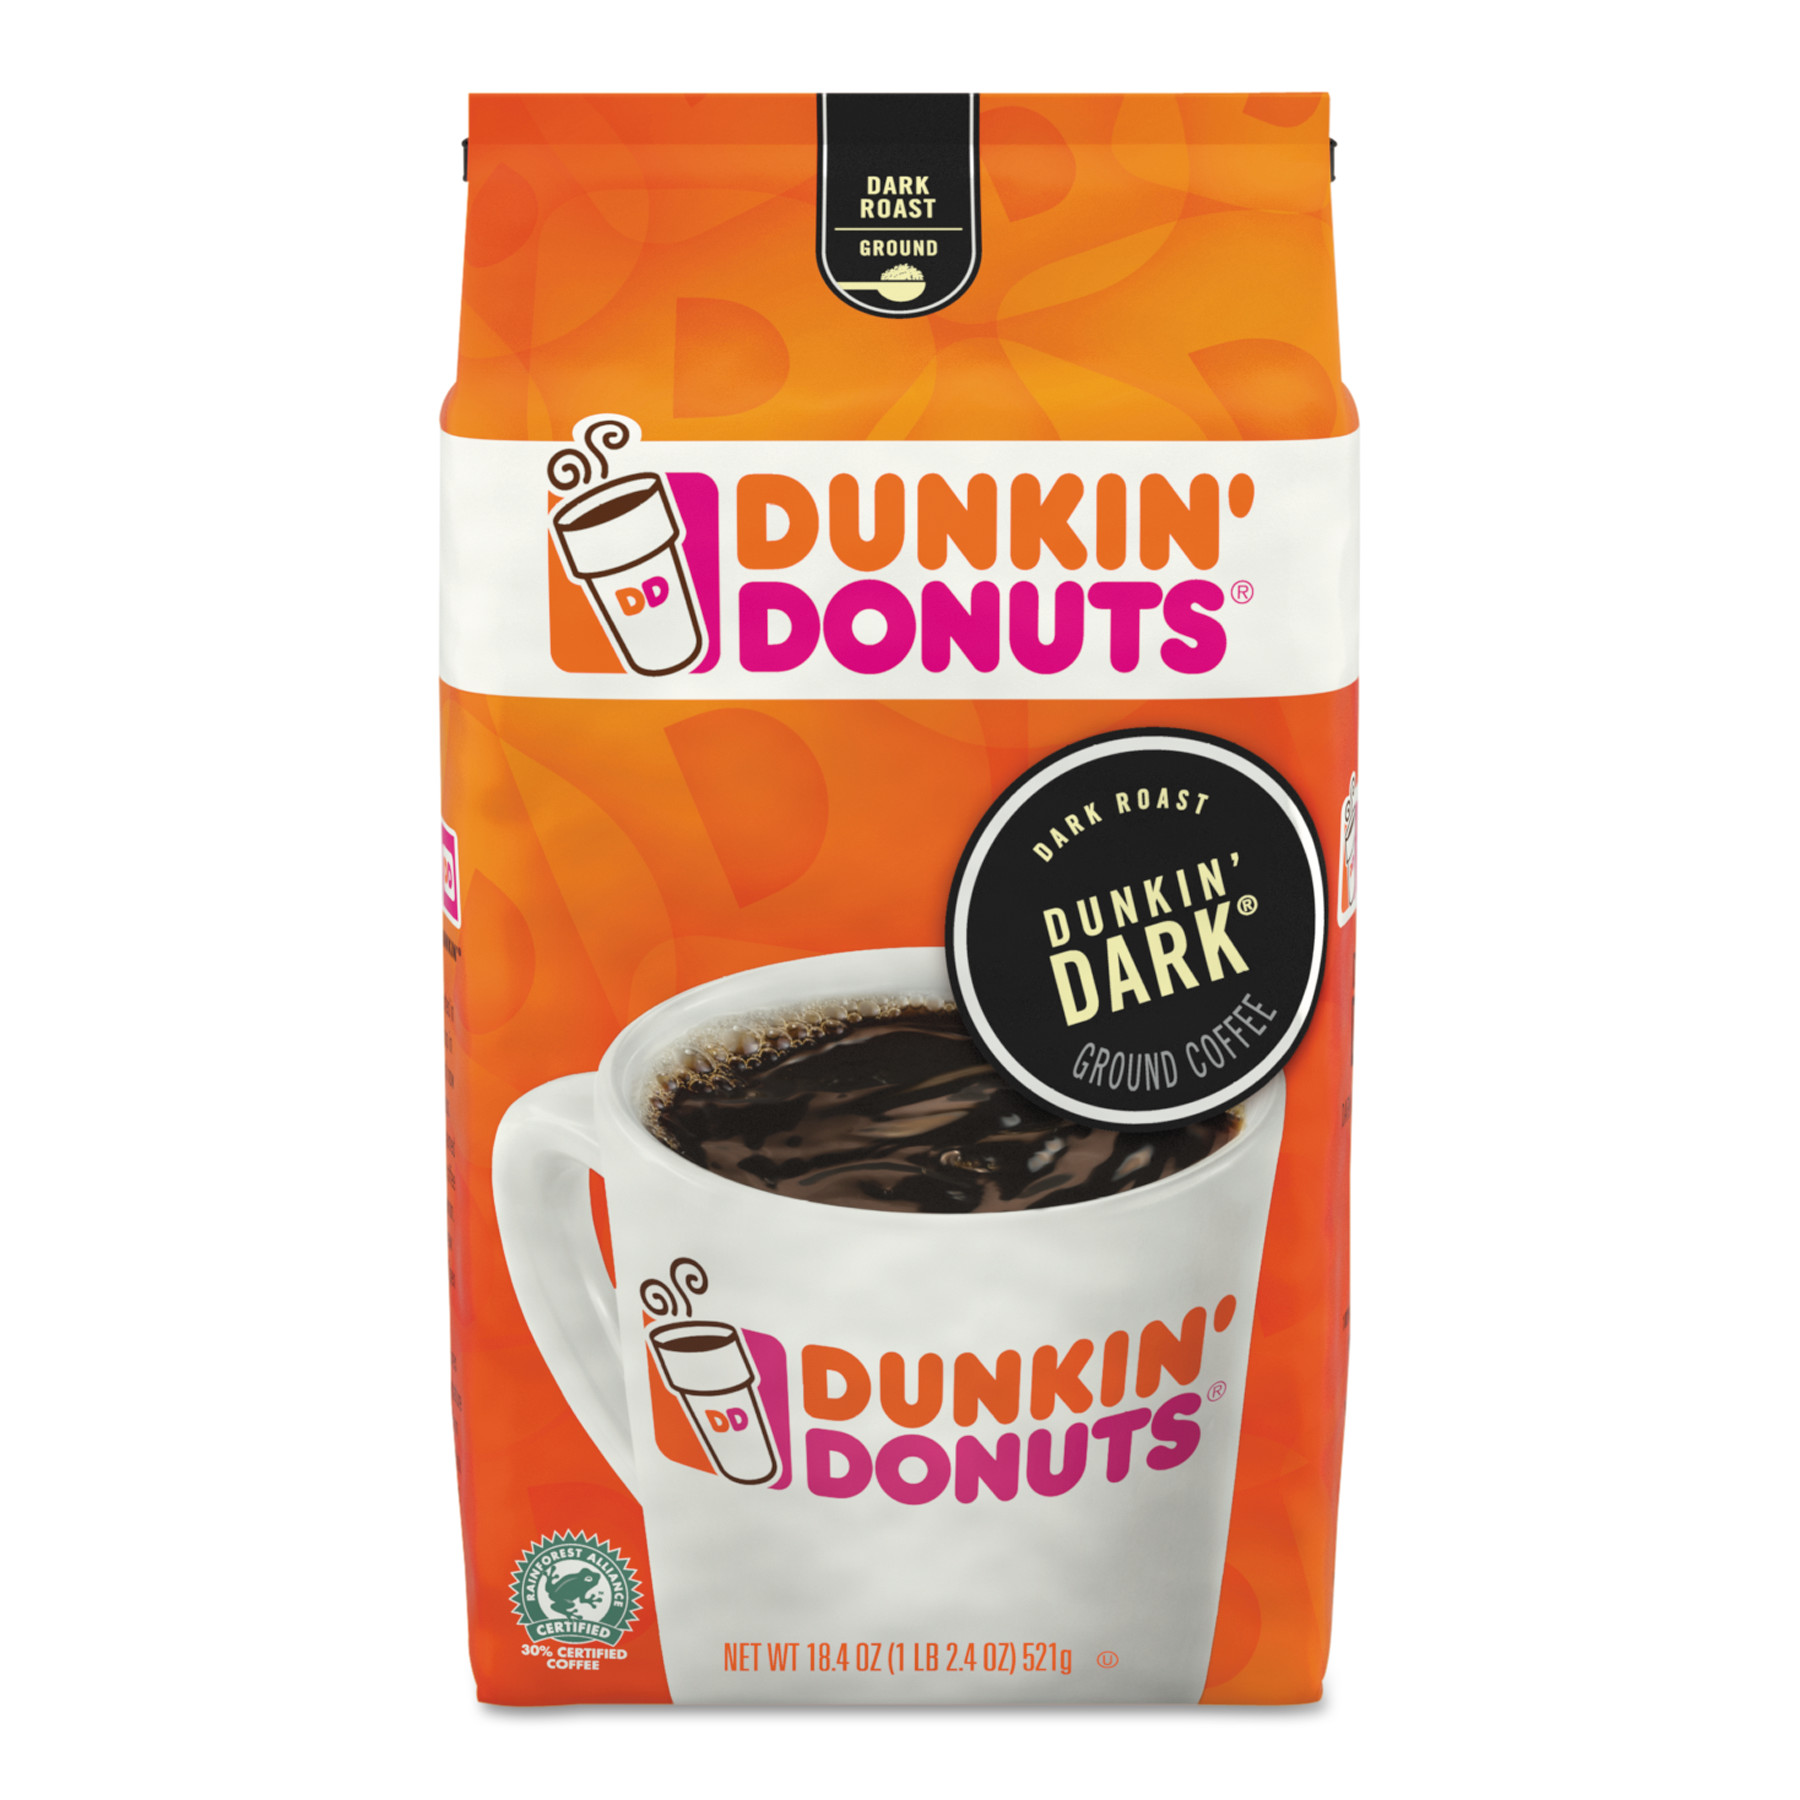 Dunkin Donuts Original Blend Coffee, Dunkin Dark Roast, 18.4 oz